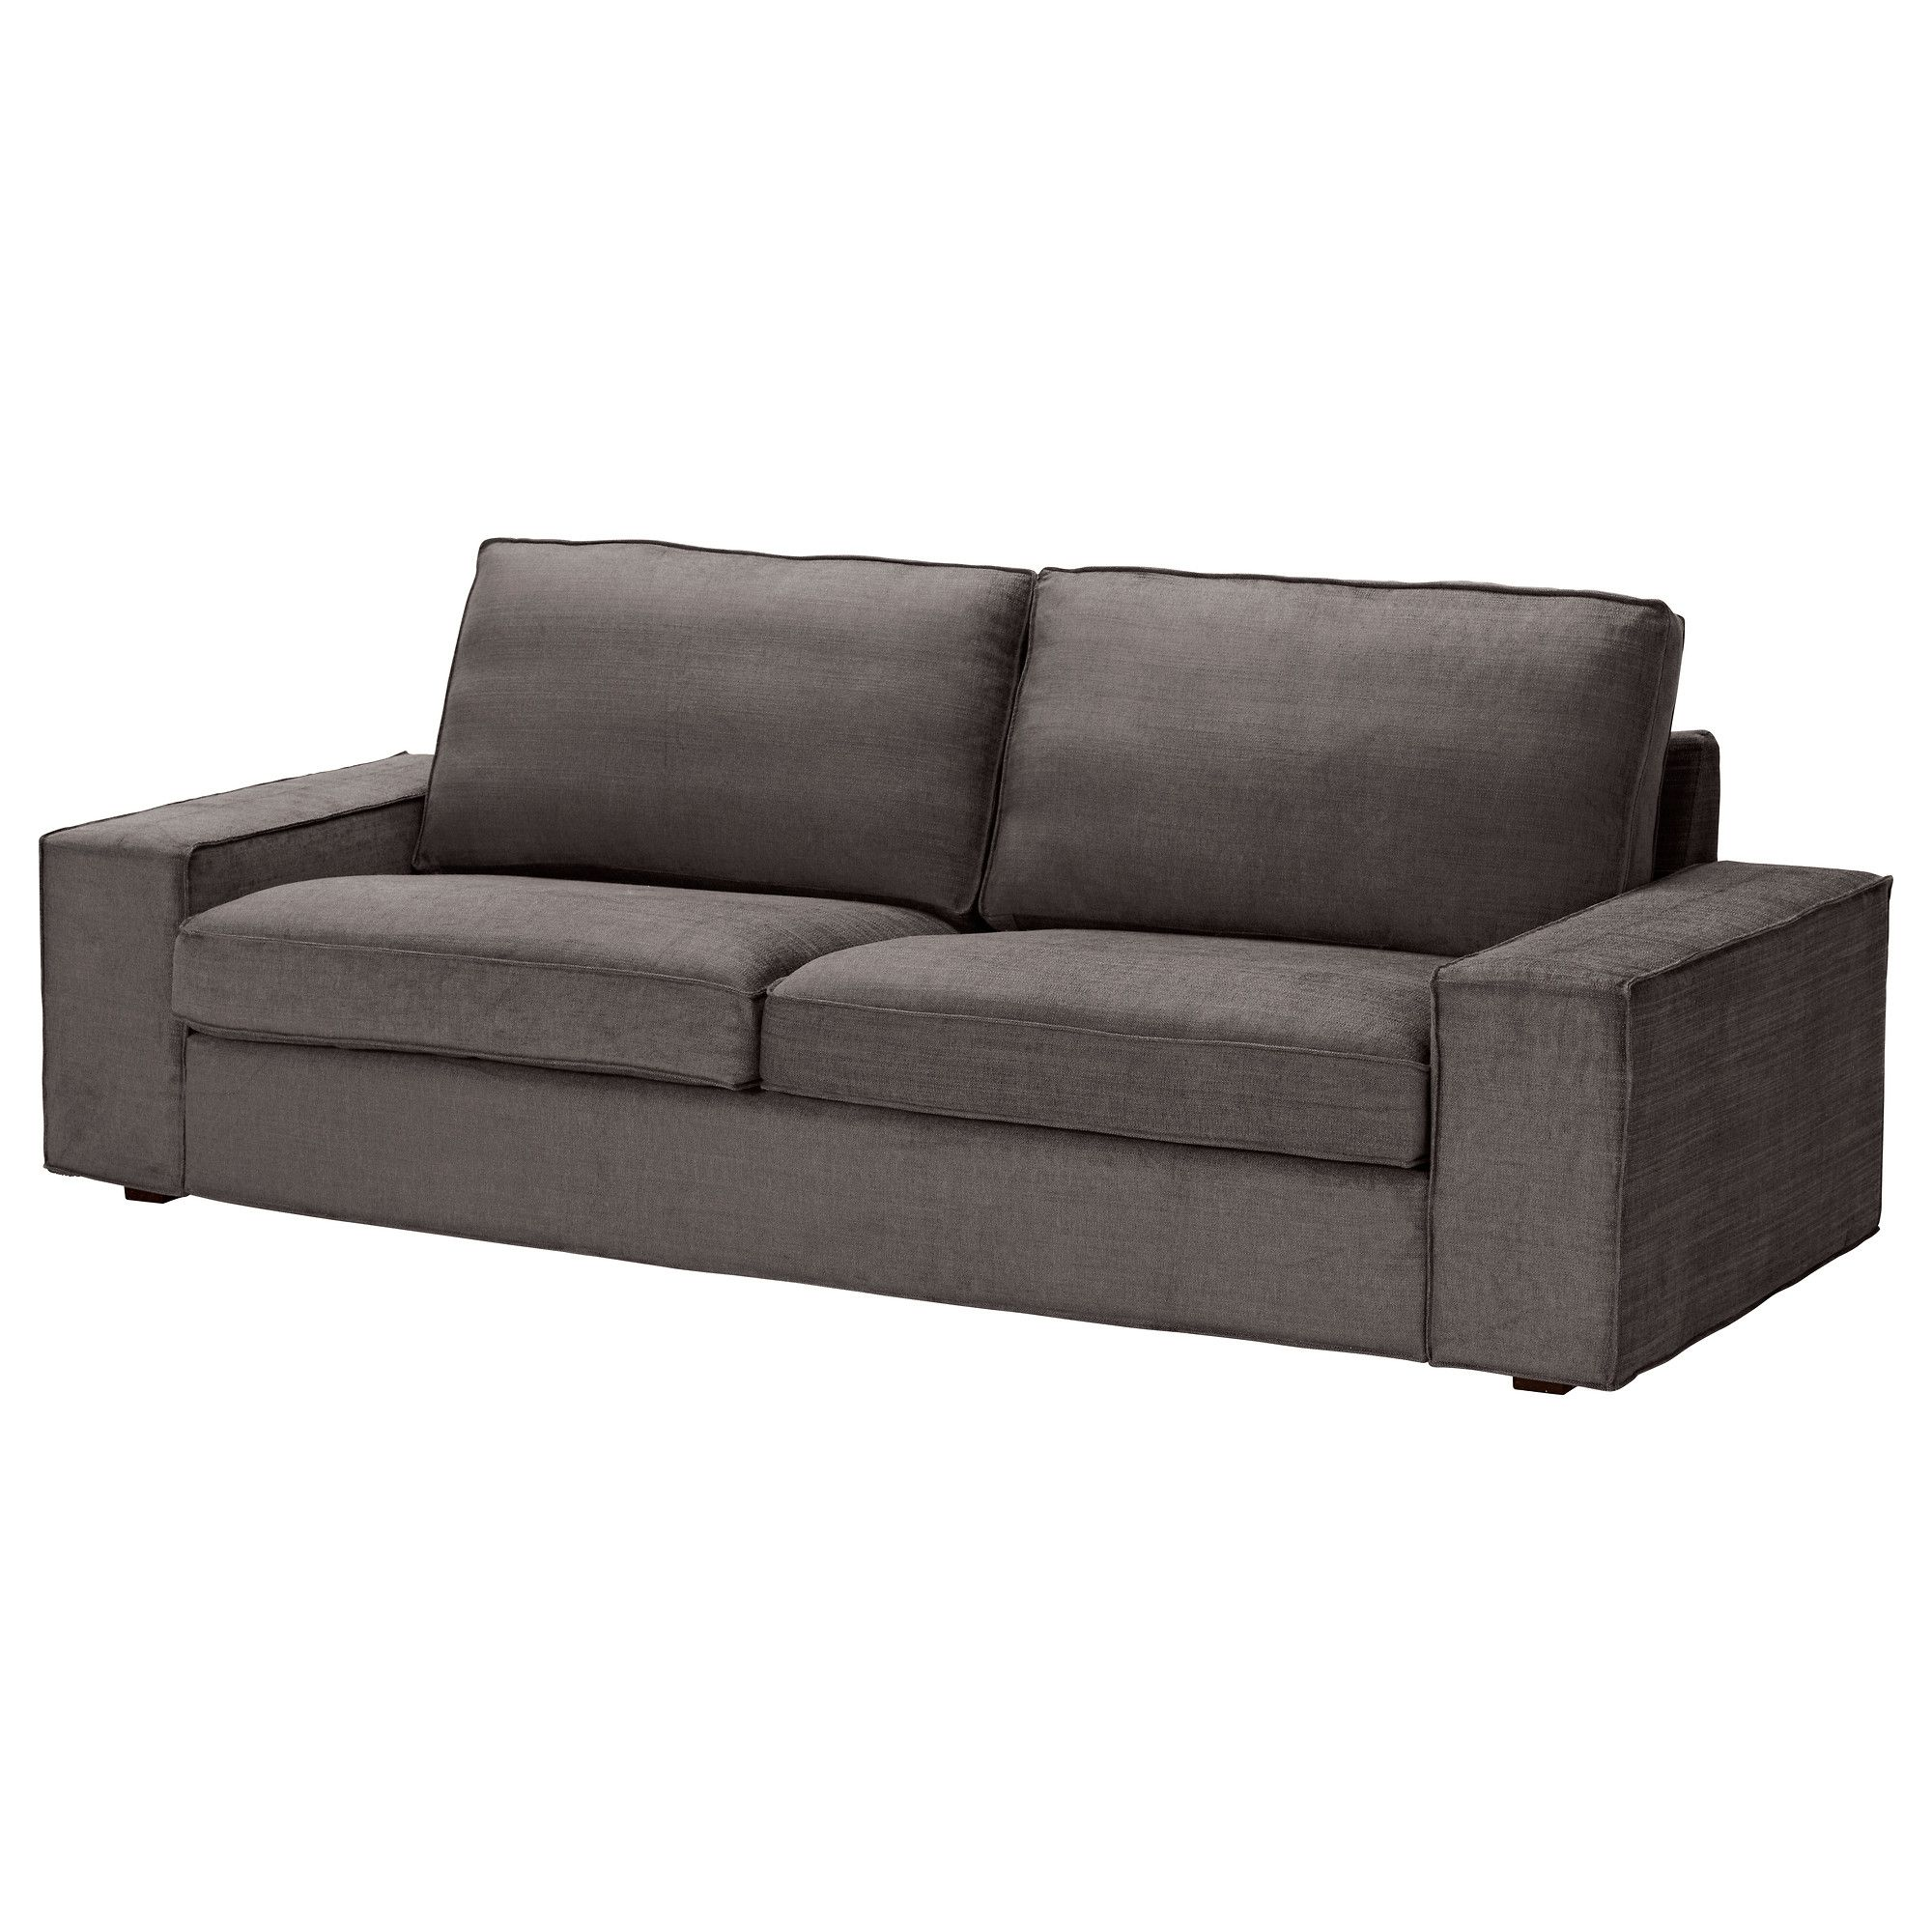 Phenomenal Us Furniture And Home Furnishings Ikea Sofa Sofa Pabps2019 Chair Design Images Pabps2019Com